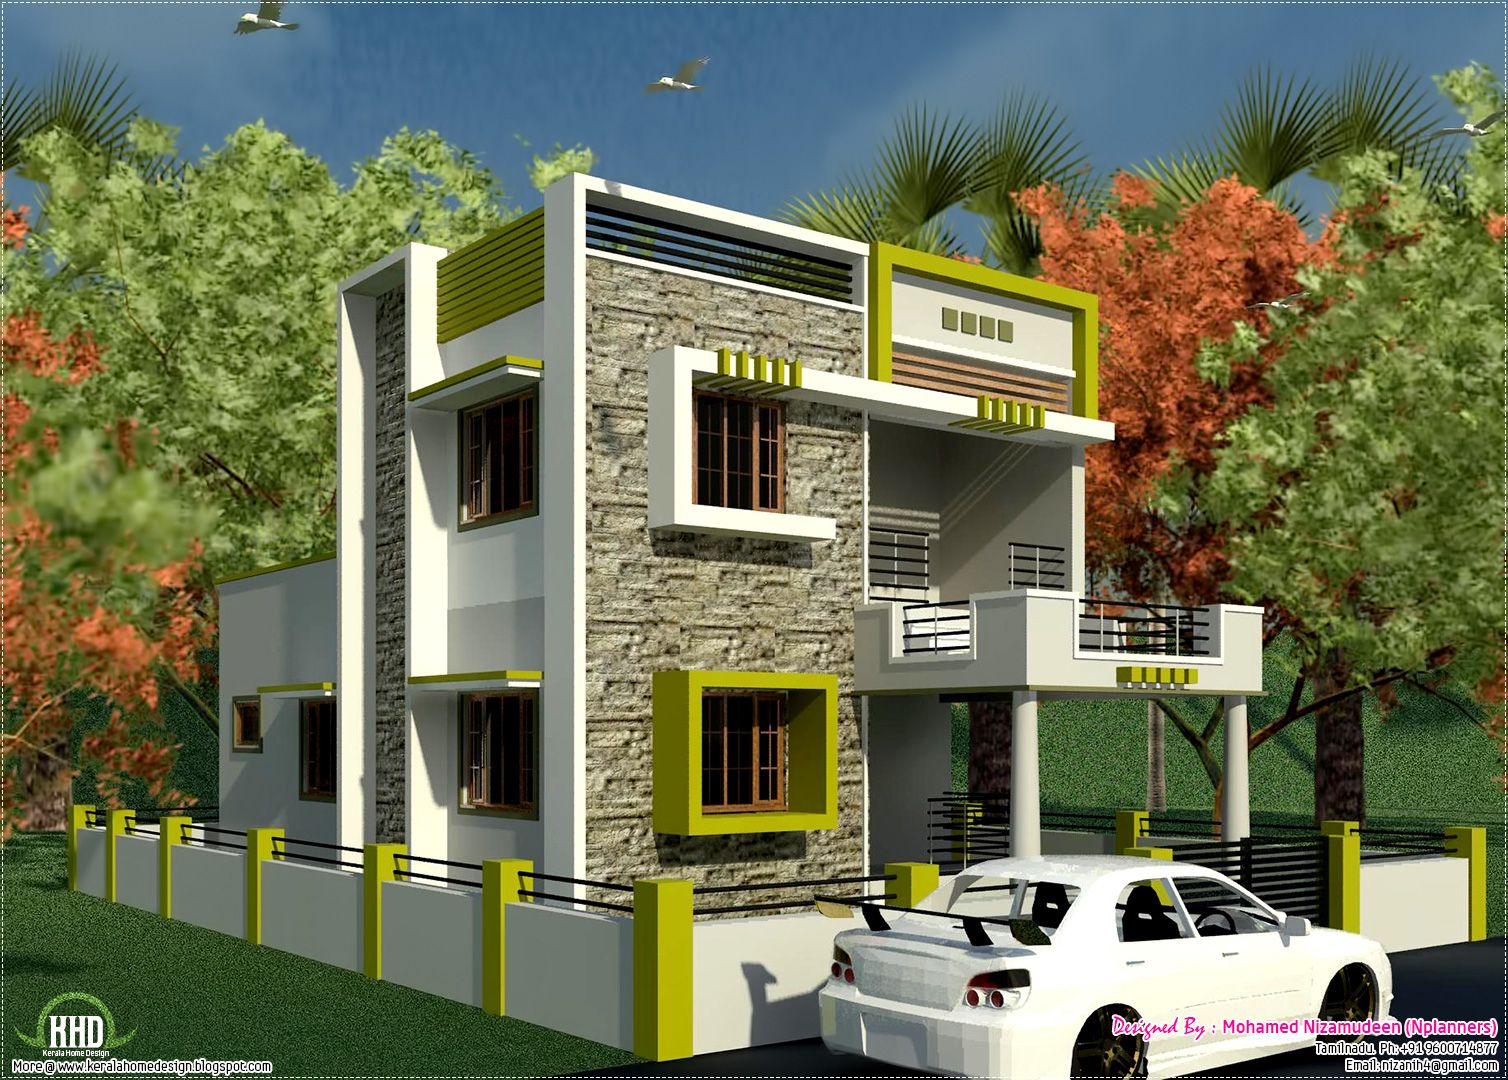 Small House With Car Park Design Tobfav Com Ideas For: indian house structure design